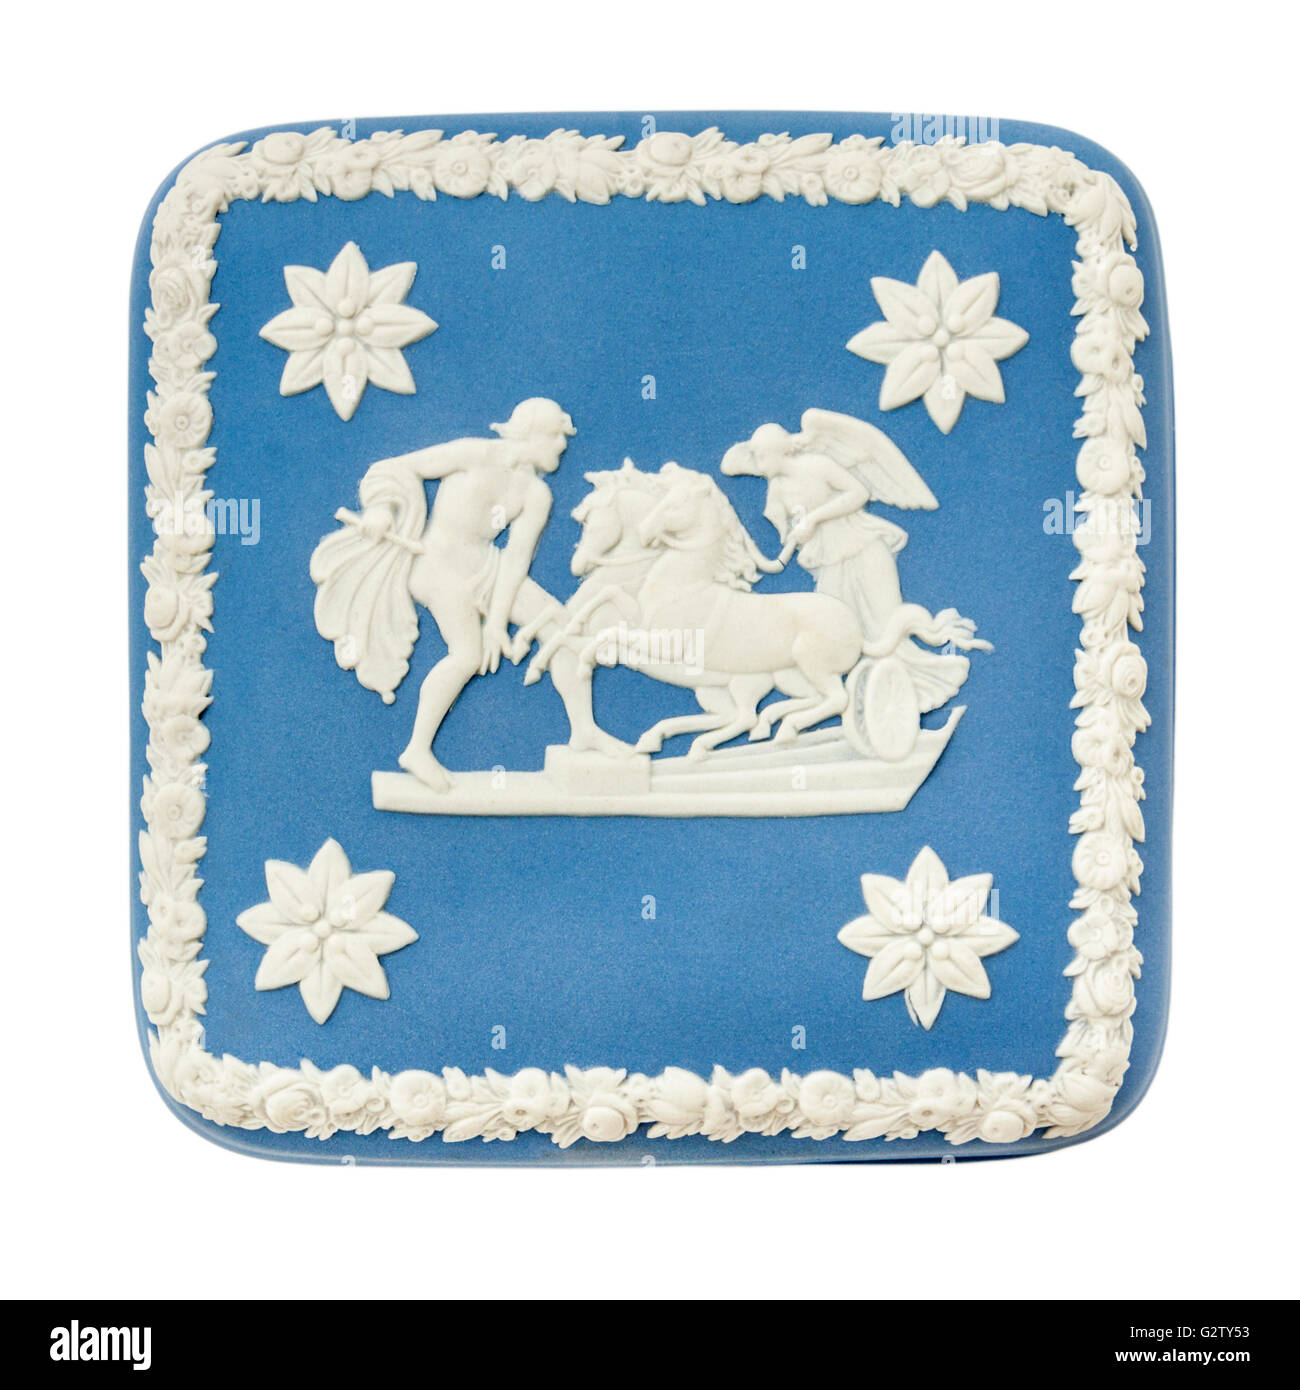 Wedgwood Blue Jasperware trinket box featuring 'Ulysses Staying the Chariot of Victory' neo-classical scene - Stock Image